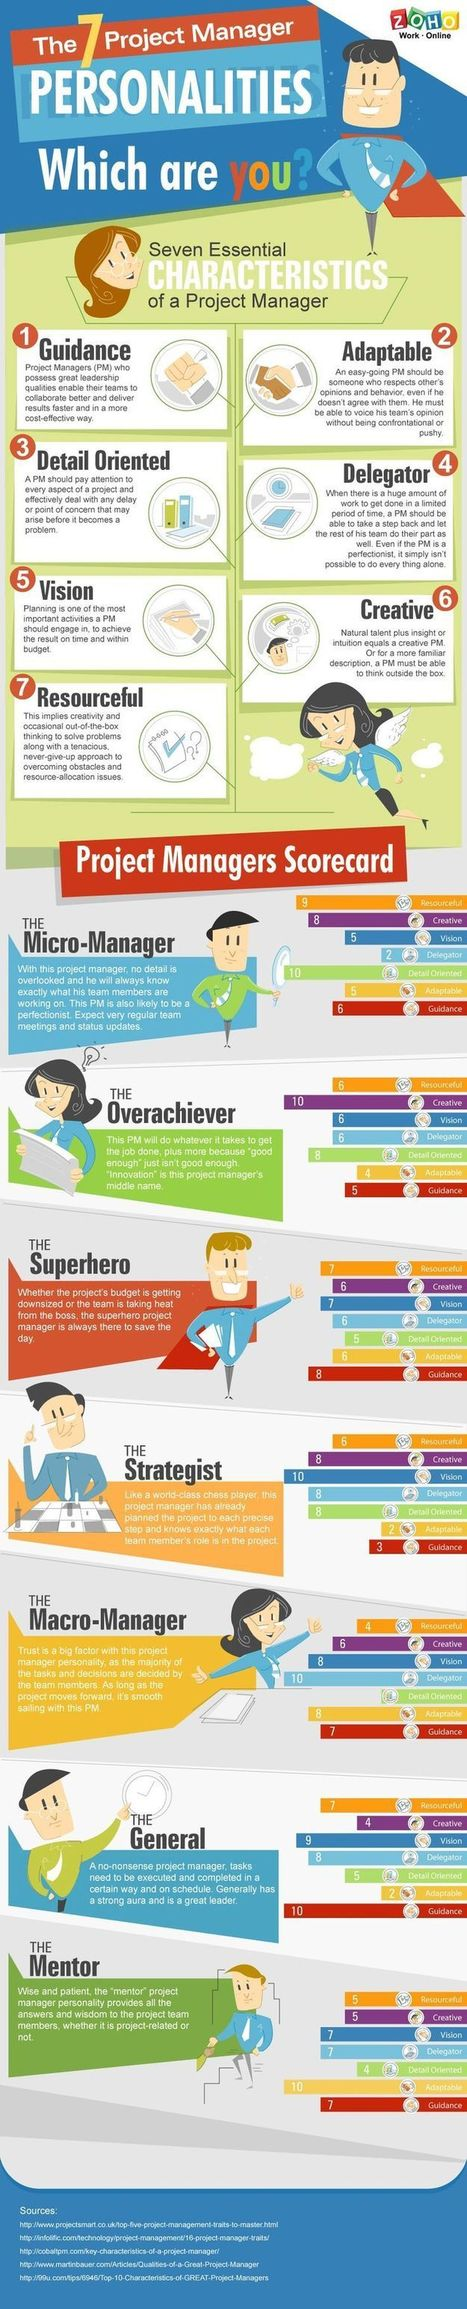 7 Project Manager Personalities-Which Are YOU? [Infographic] | Emerging Classroom | Scoop.it